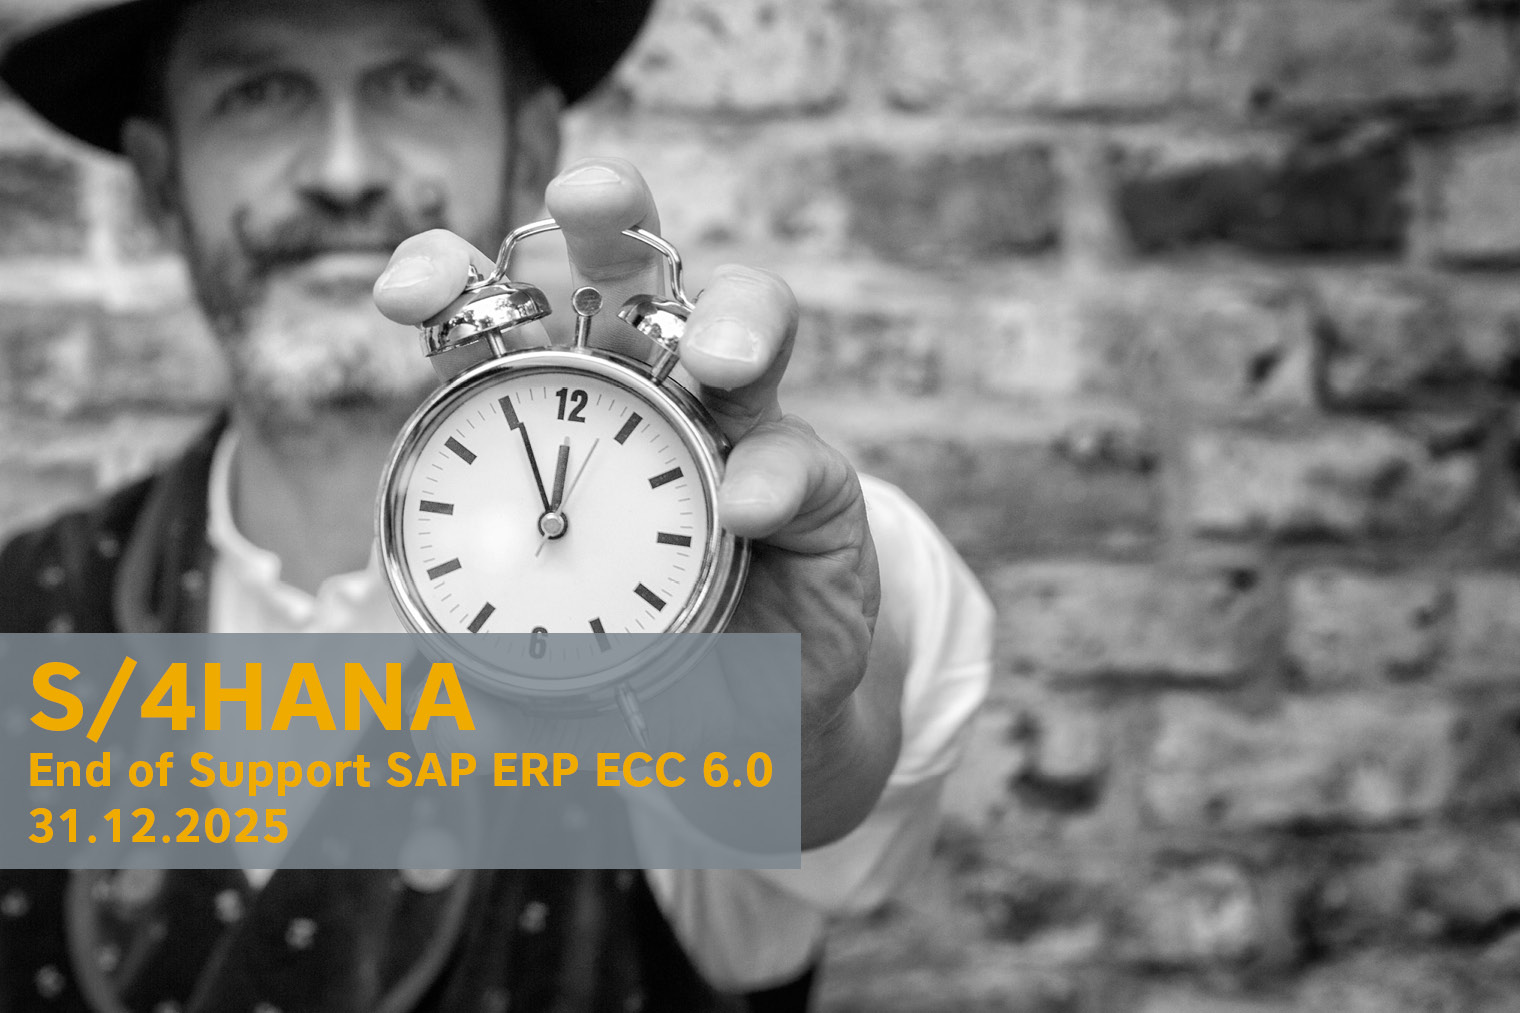 S4HANA End of Support